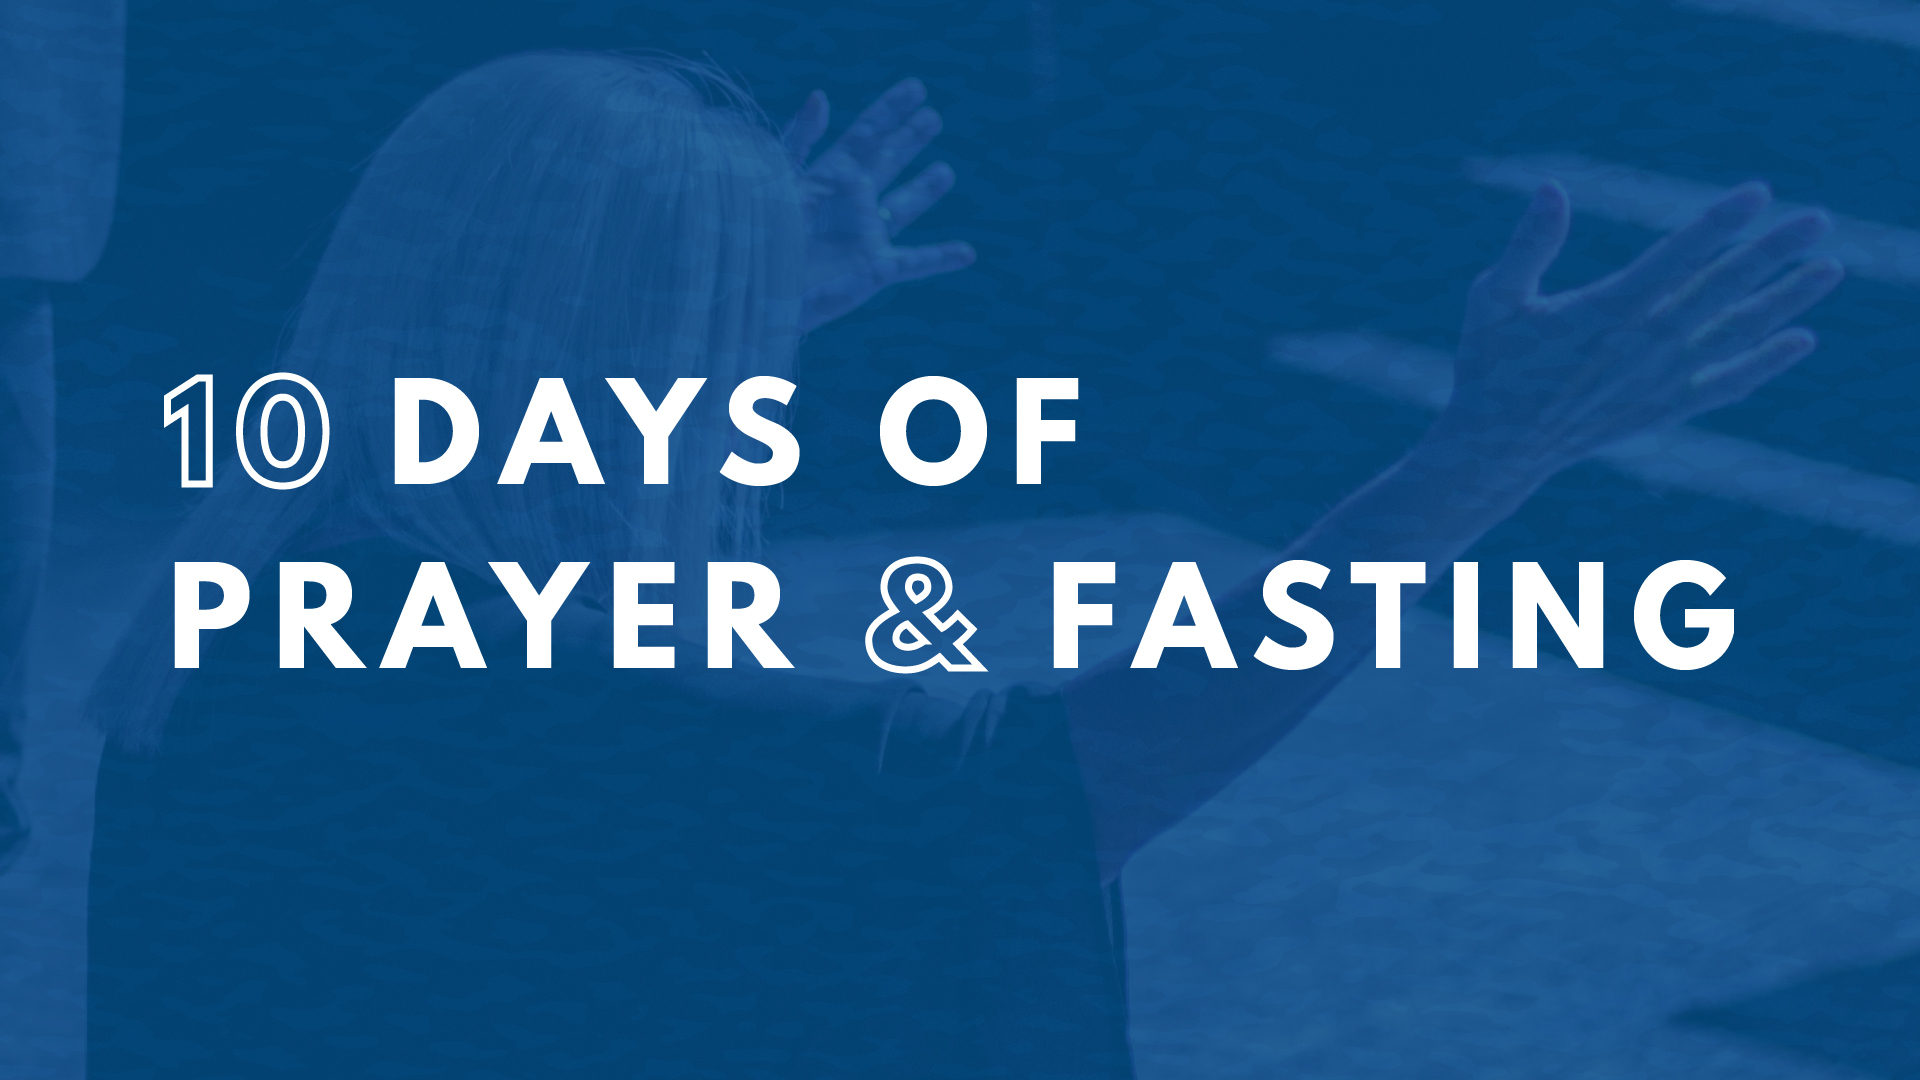 10-Days-of-Prayer-and-Fasting_Web_App.jpg?mtime=20201229113813#asset:306343